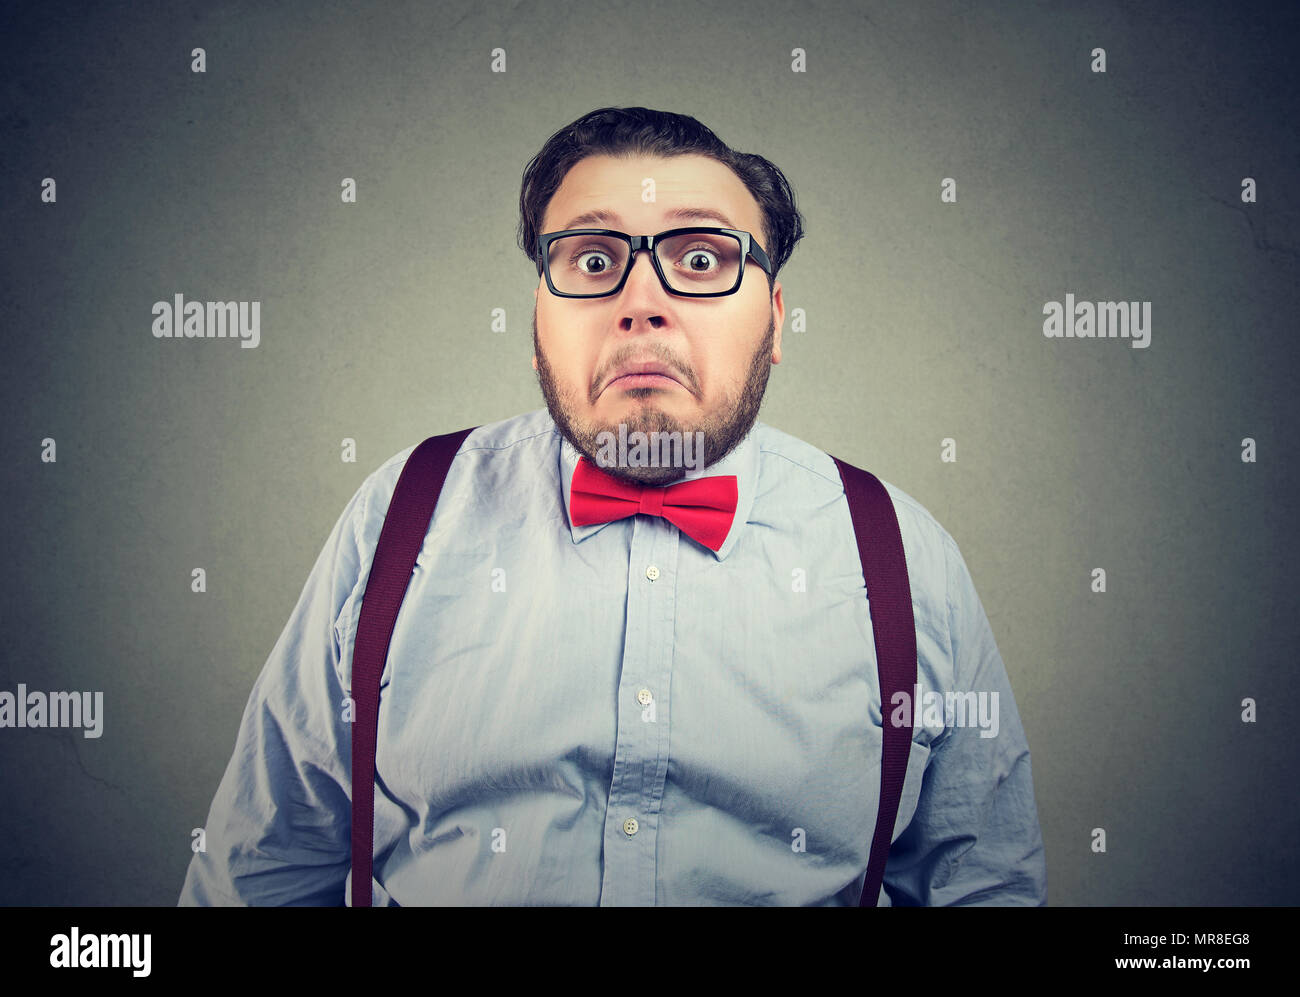 Funny obese man in bow tie and glasses looking awkward and perplexed on gray background. - Stock Image